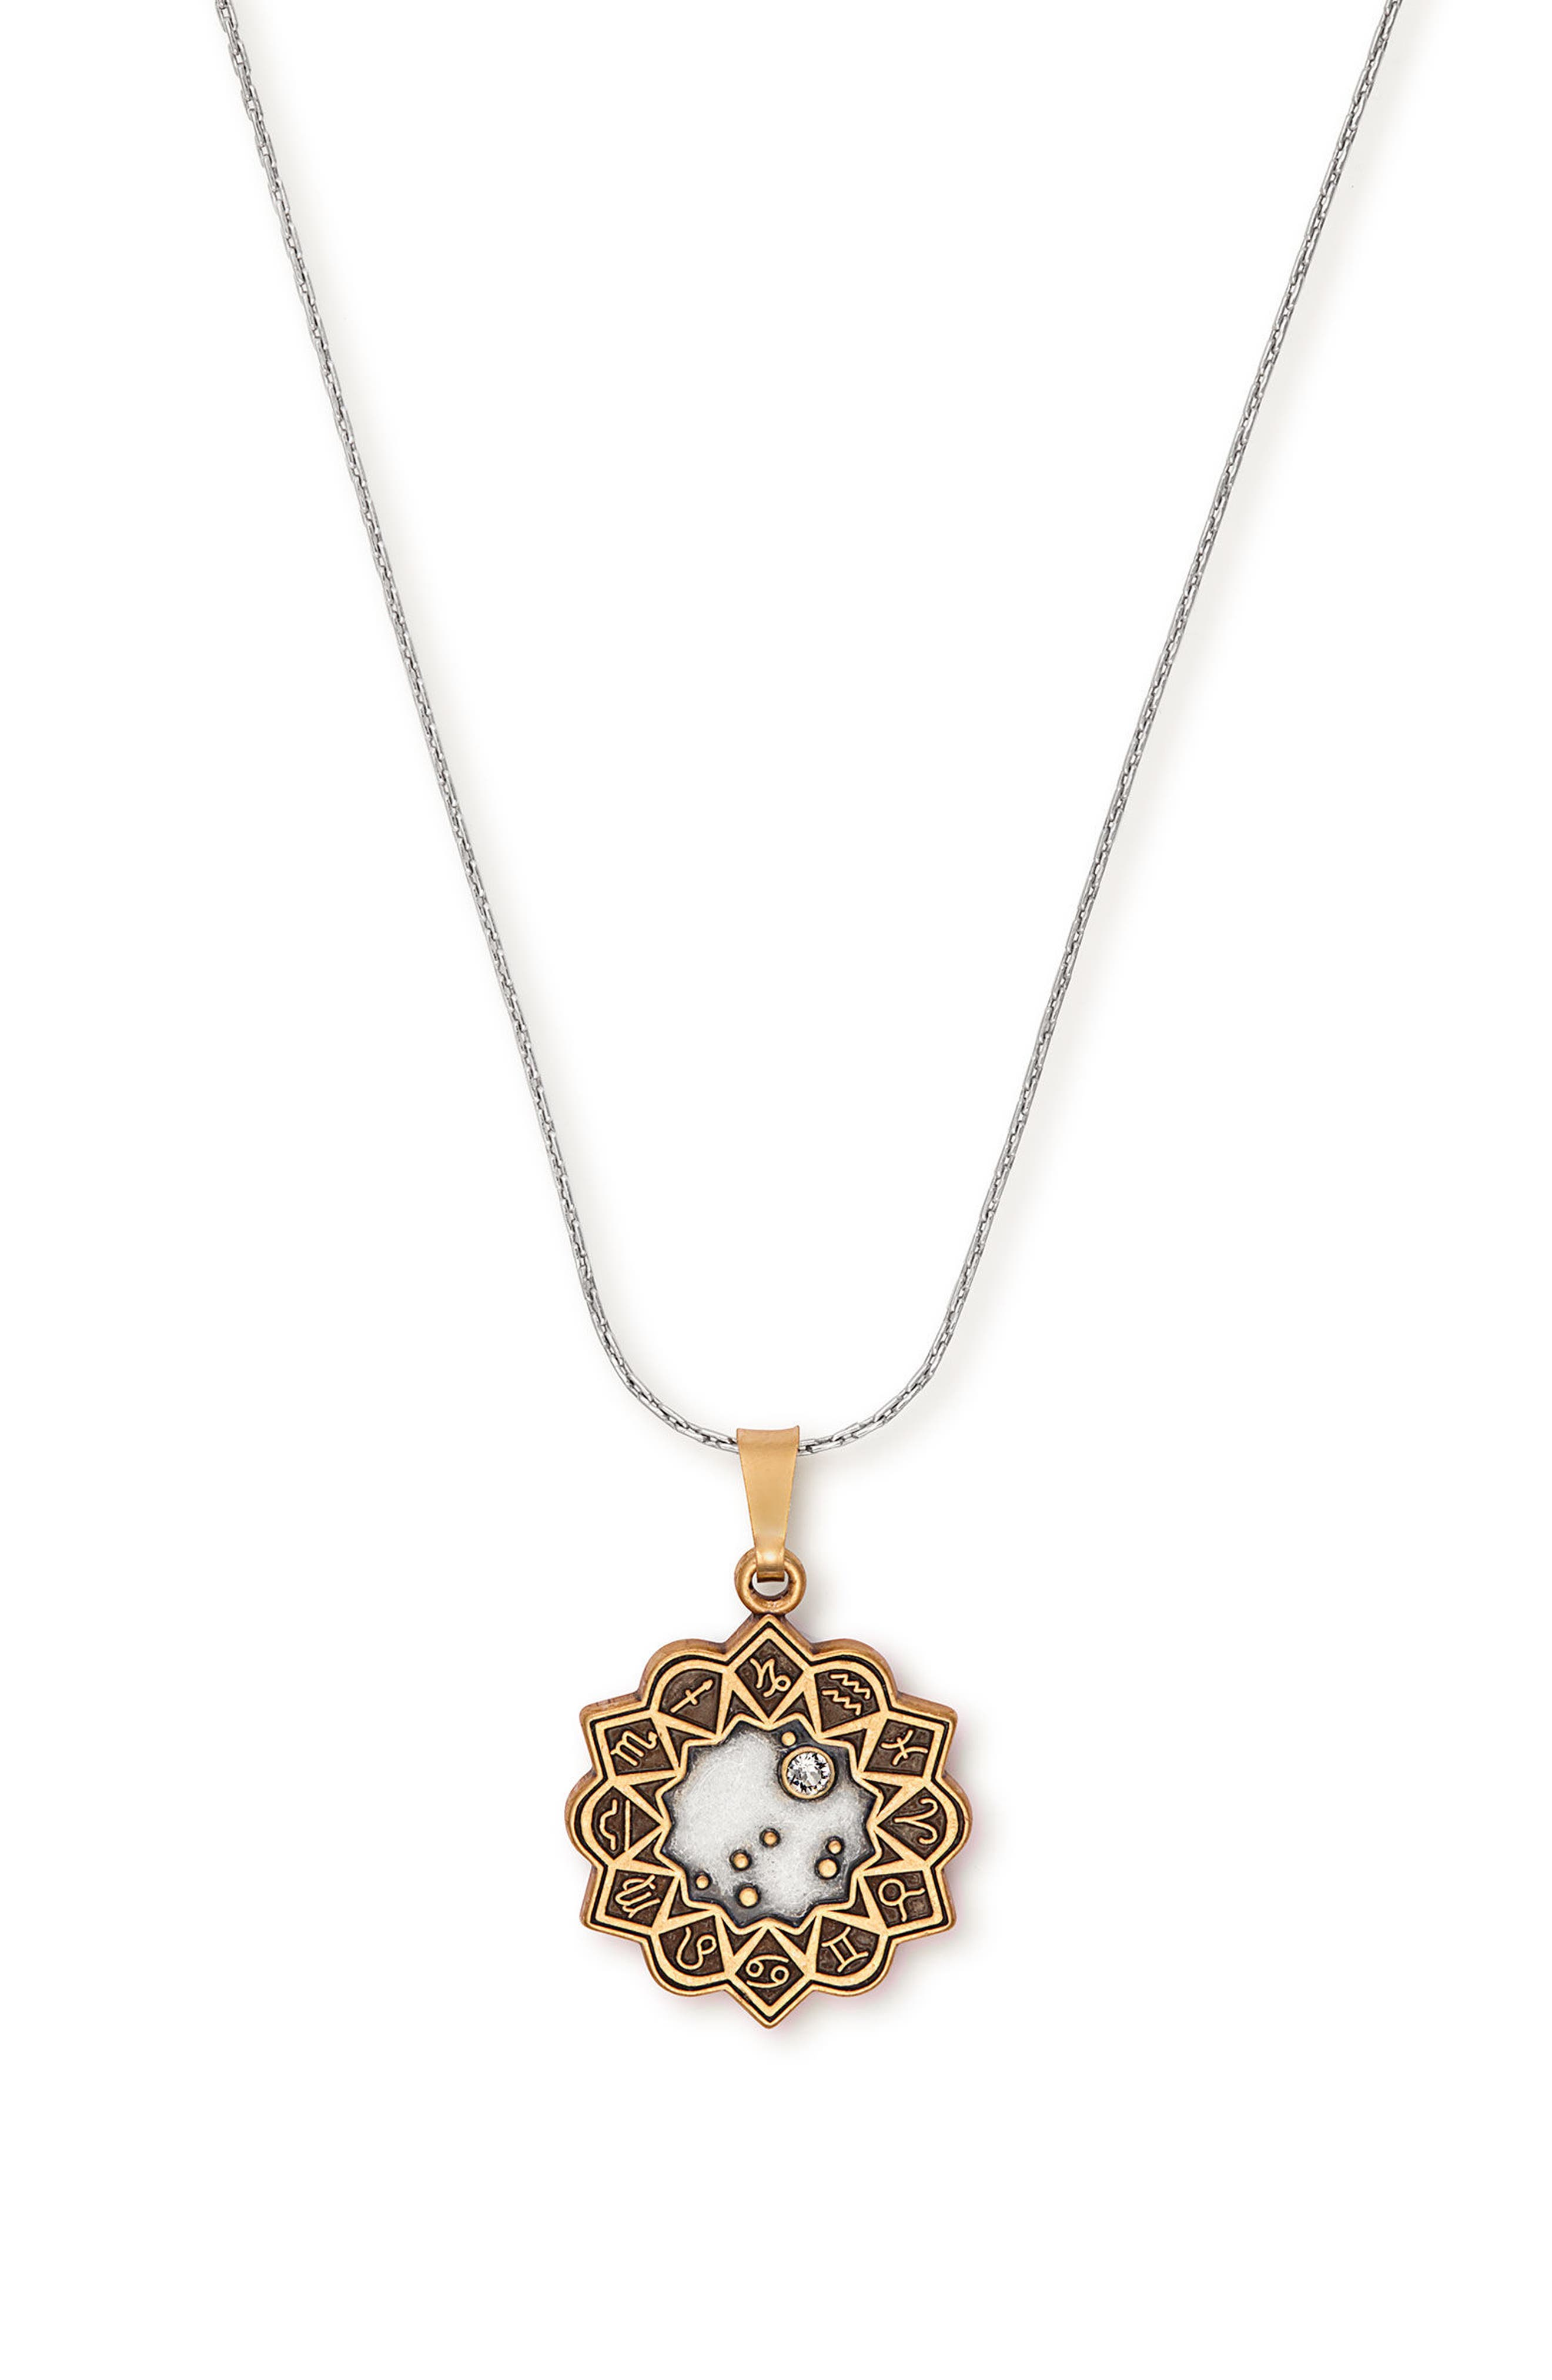 Main Image - Alex and Ani Aries Expandable Pendant Necklace